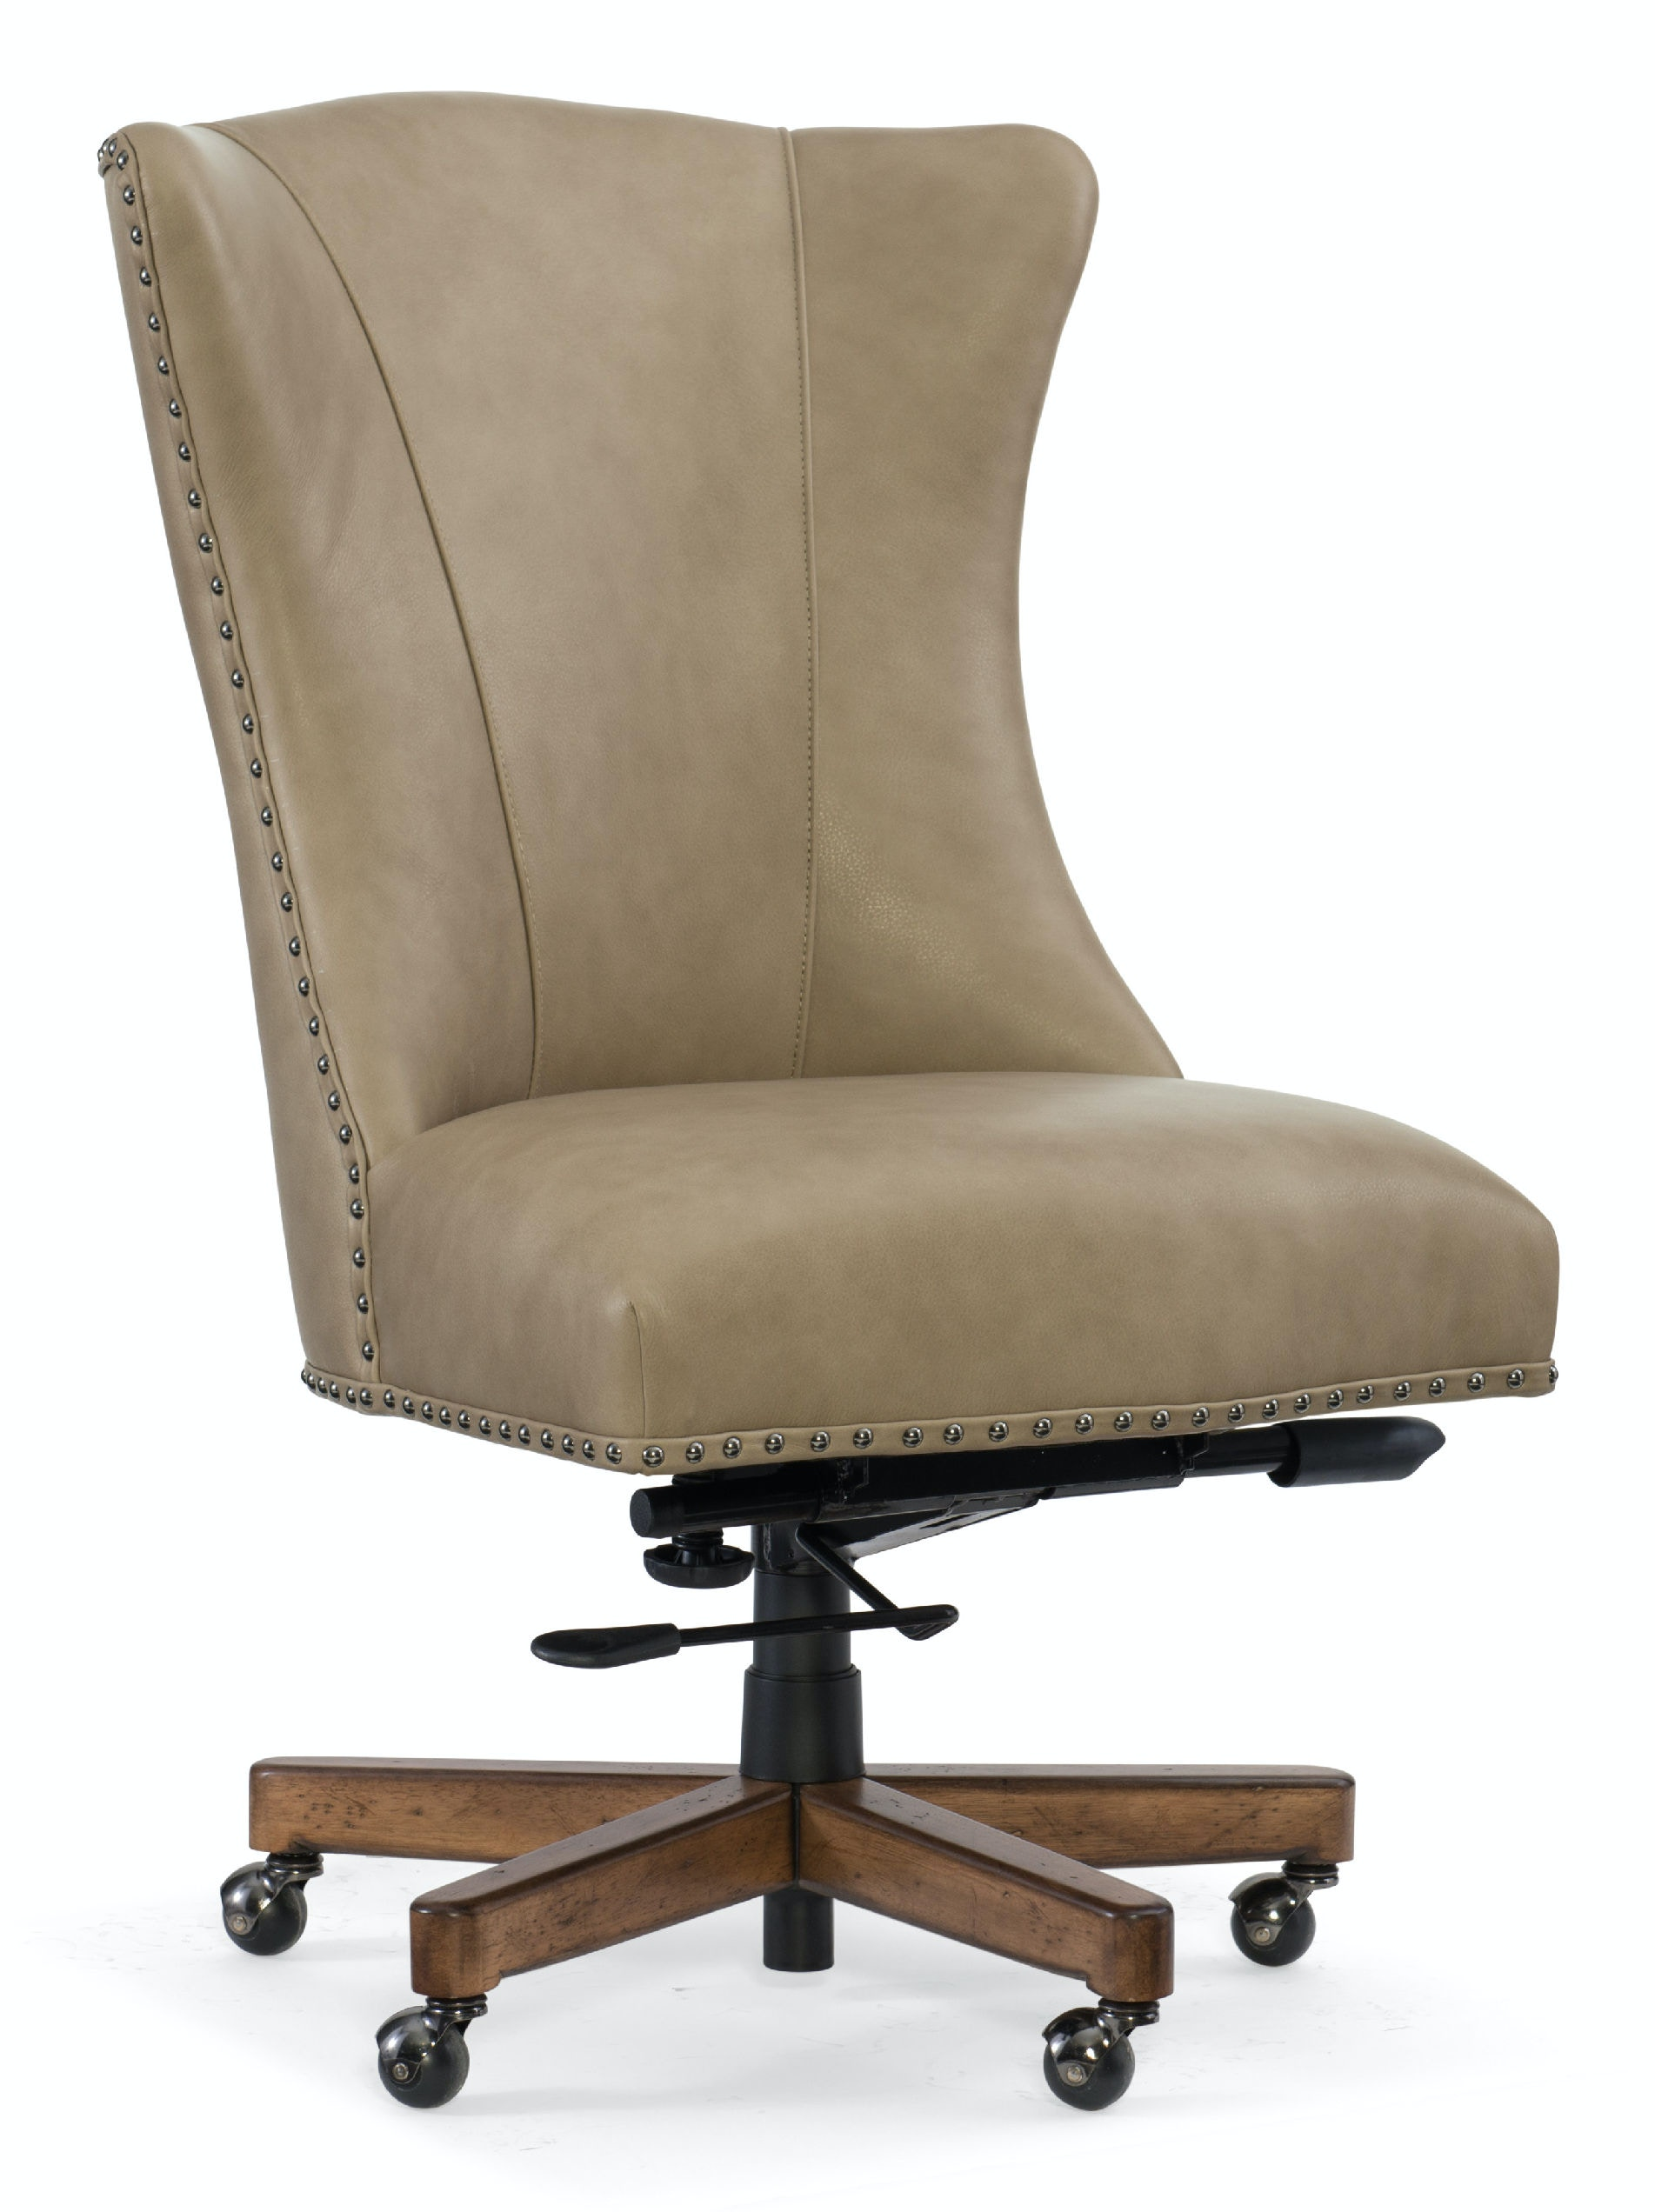 hooker furniture lynn home office chair ec483 083